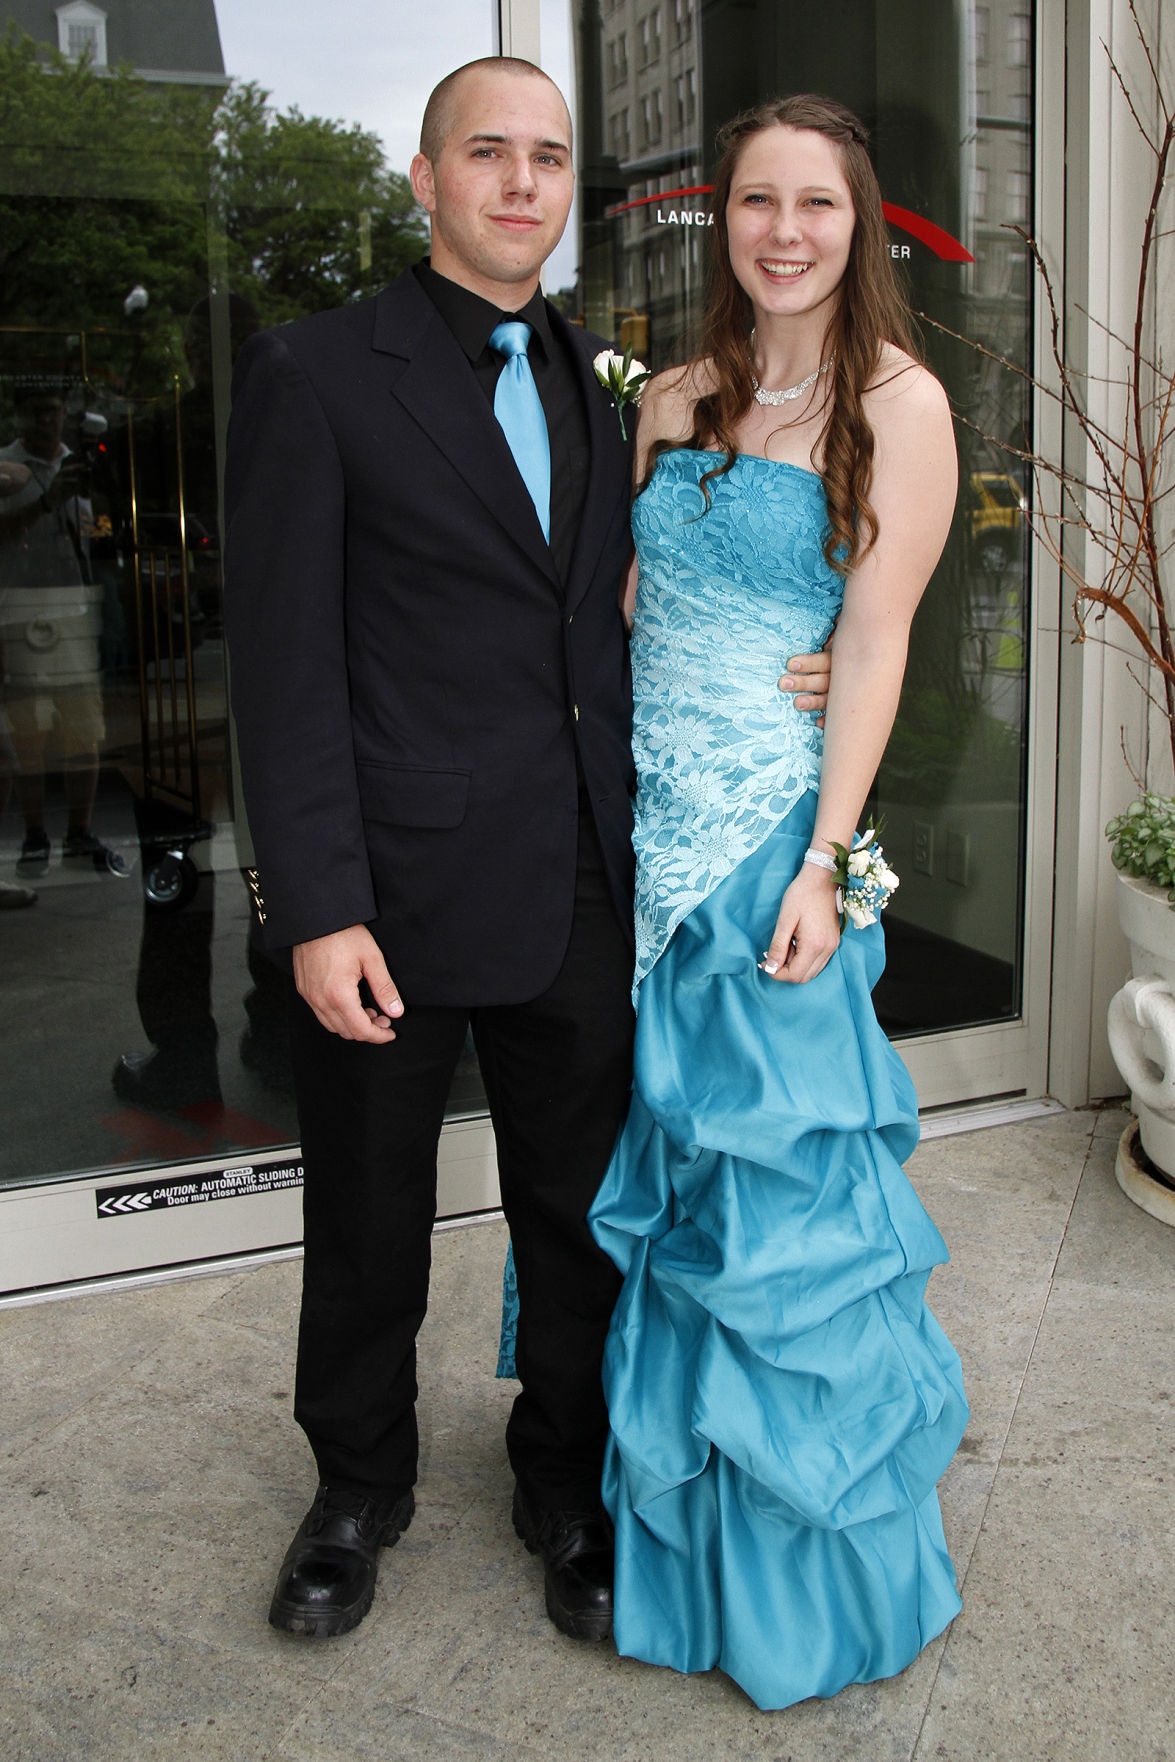 Generous Duct Tape Dress Prom Pictures Inspiration - Wedding Ideas ...